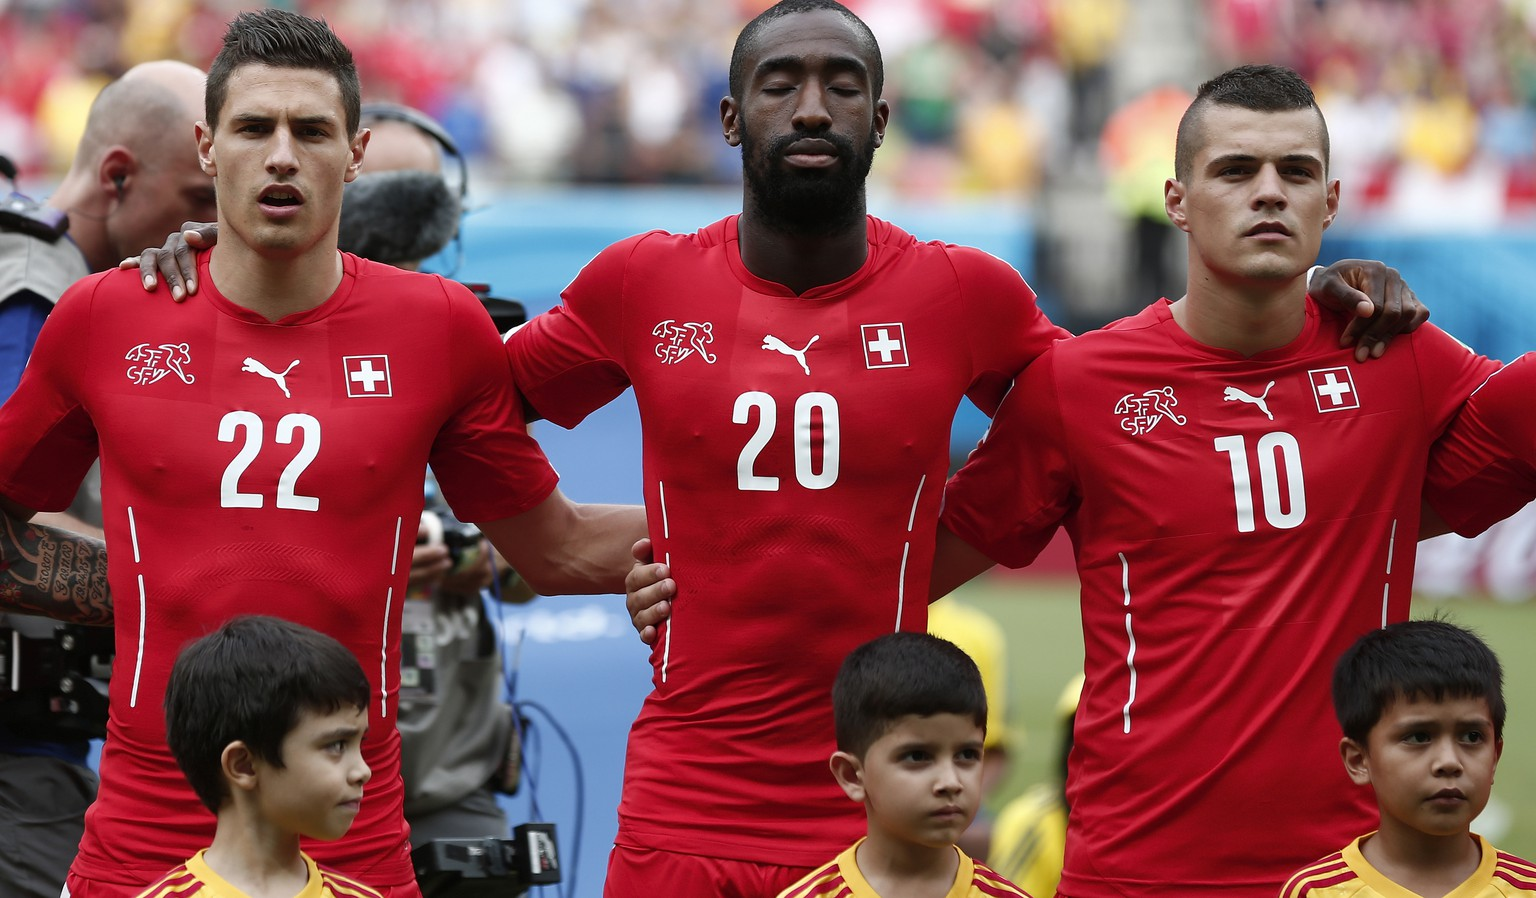 From left: Switzerland's Fabian Schaer, Johan Djourou and Granit Xhaka listen to the national anthem prior to the group E preliminary round match between Switzerland and Honduras in the Arena da Amazonia in Manaus, Brazil, Wednesday, June 25, 2014. (KEYSTONE/Peter Klaunzer)